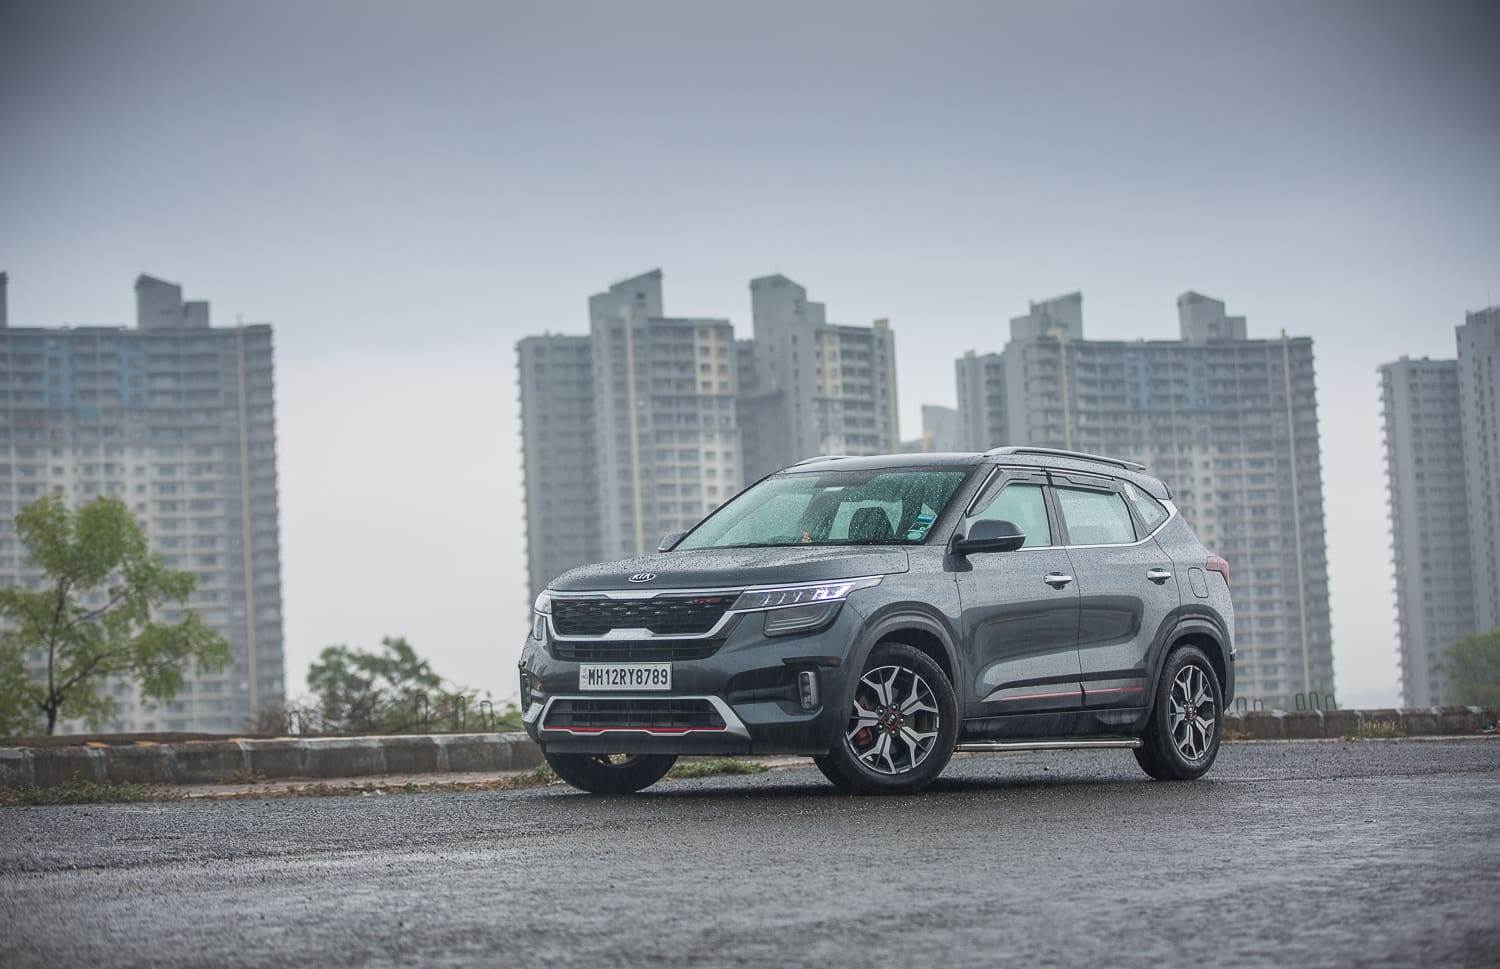 New 2022 Kia To Be A 7-Seat SUV?